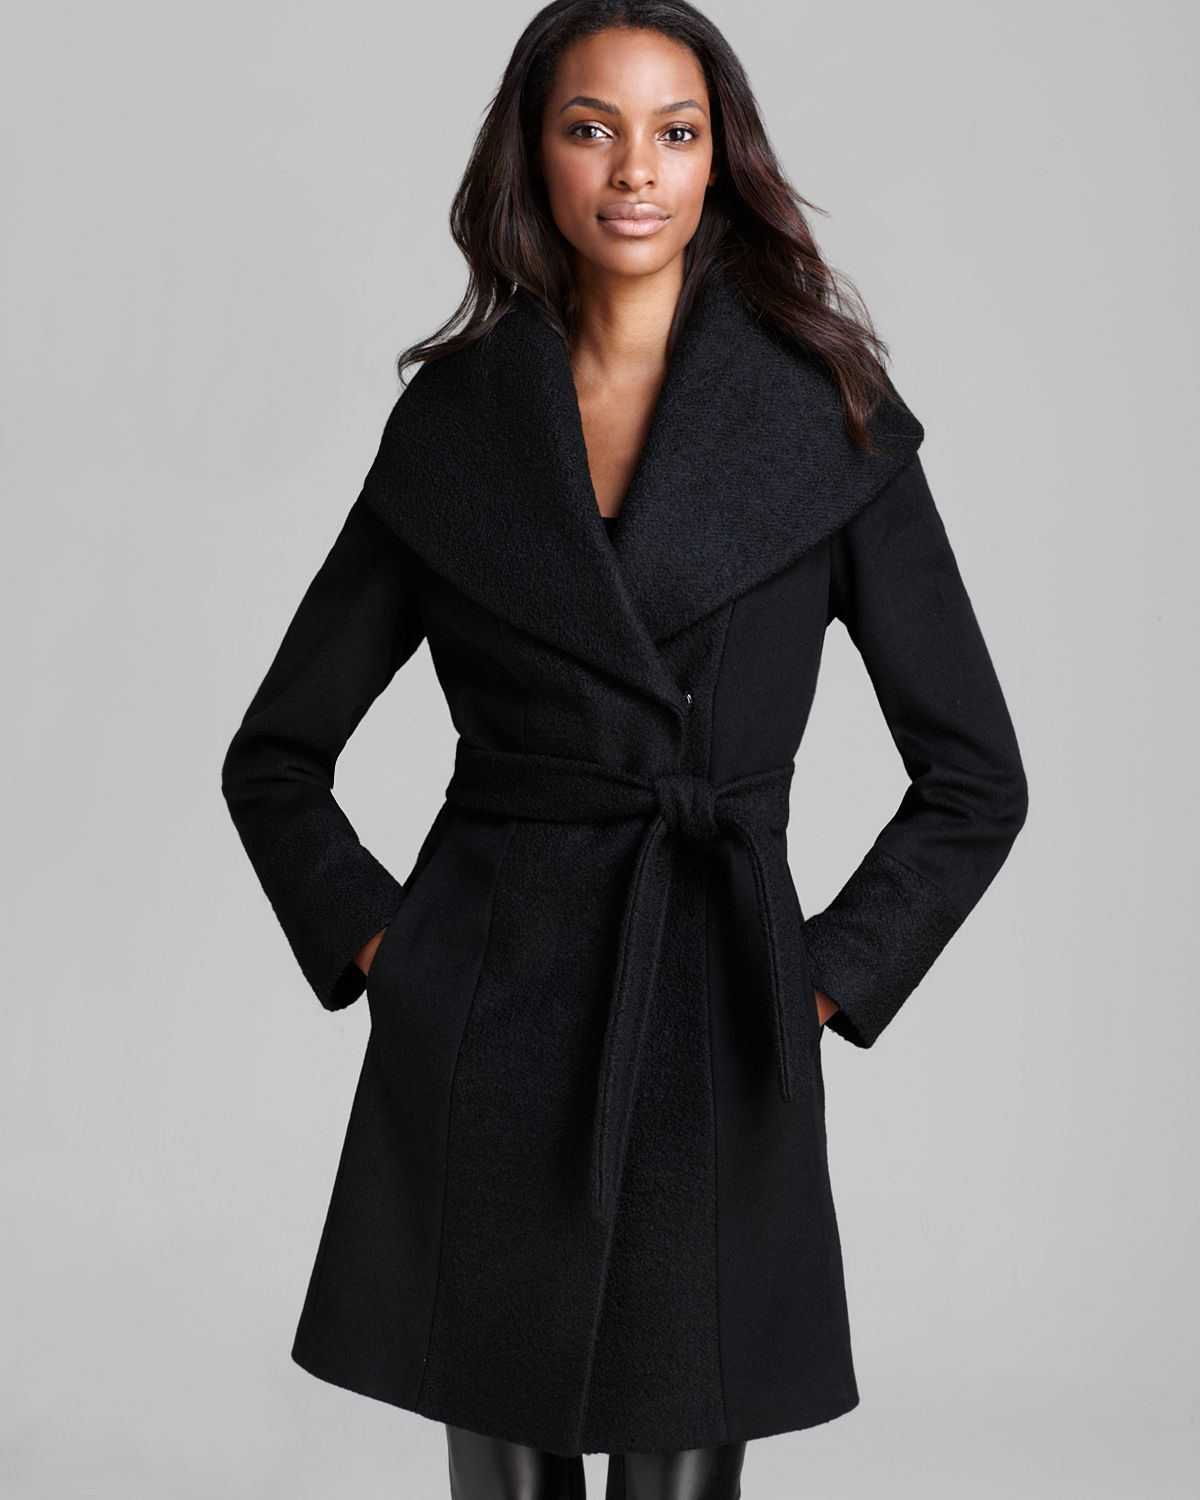 Shop a great selection of Wool Coats & Jackets for Women at Nordstrom Rack. Find designer Wool Coats & Jackets for Women up to 70% off and get free shipping on orders over $ Double Face Wool Blend Wrap Front Coat (Regular & Petite) Badgley Mischka.